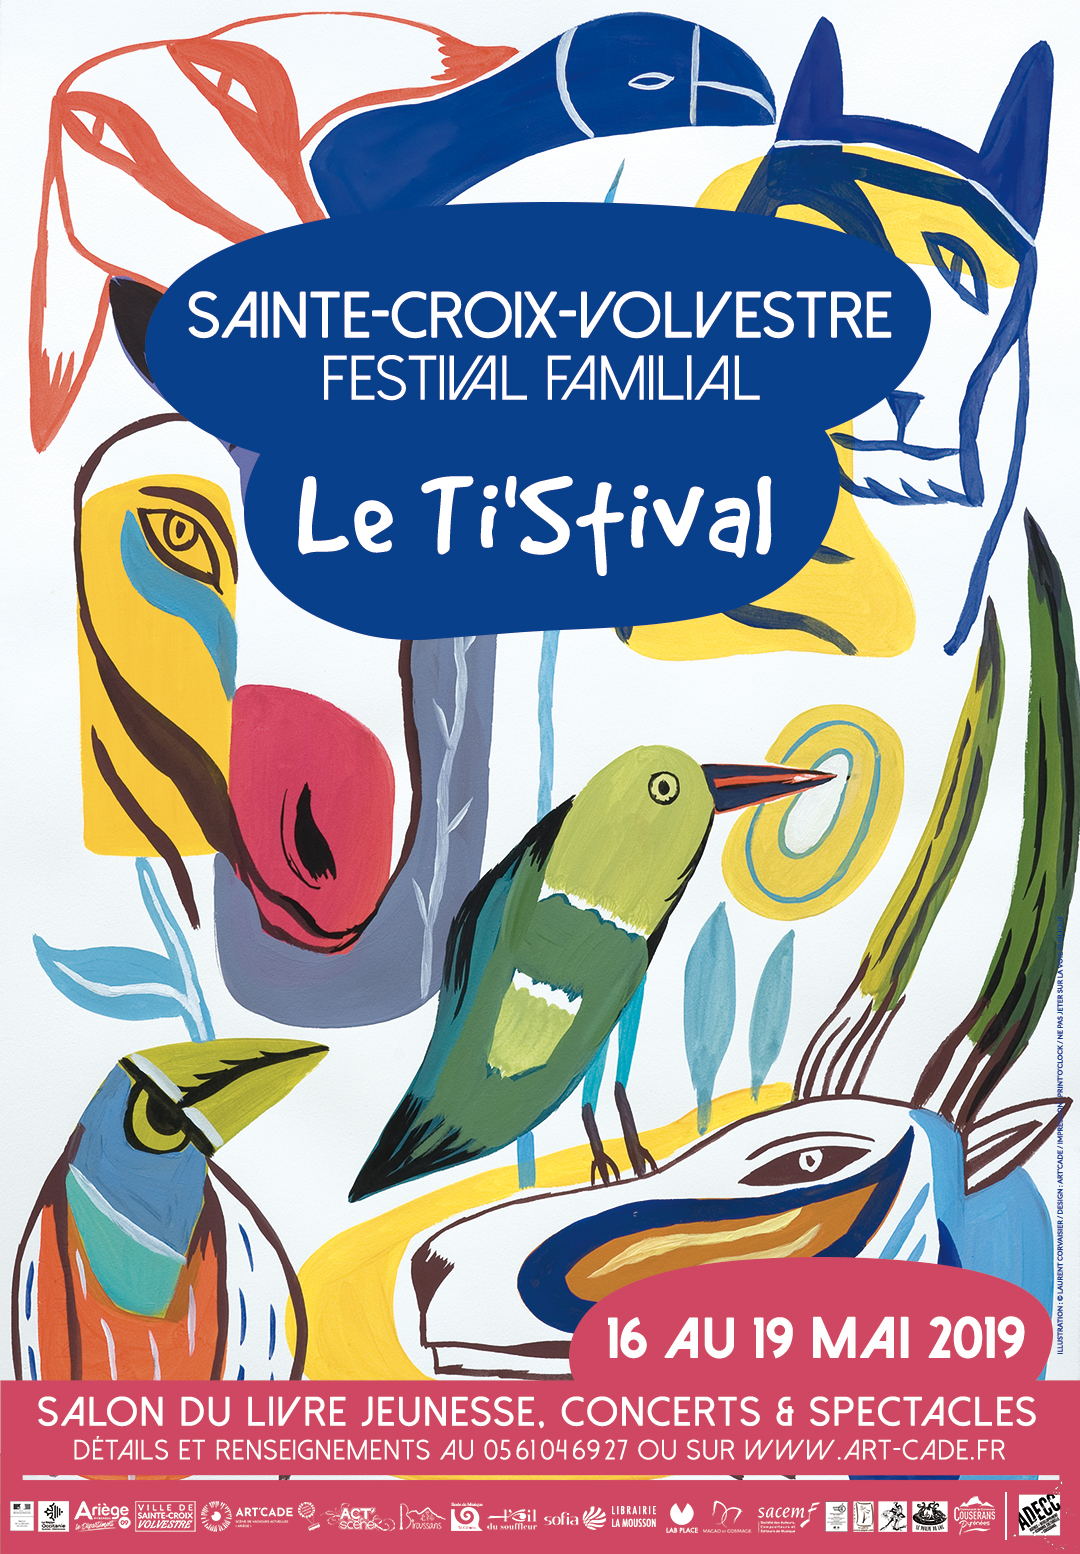 TiSTival_Affiche70x100_2019